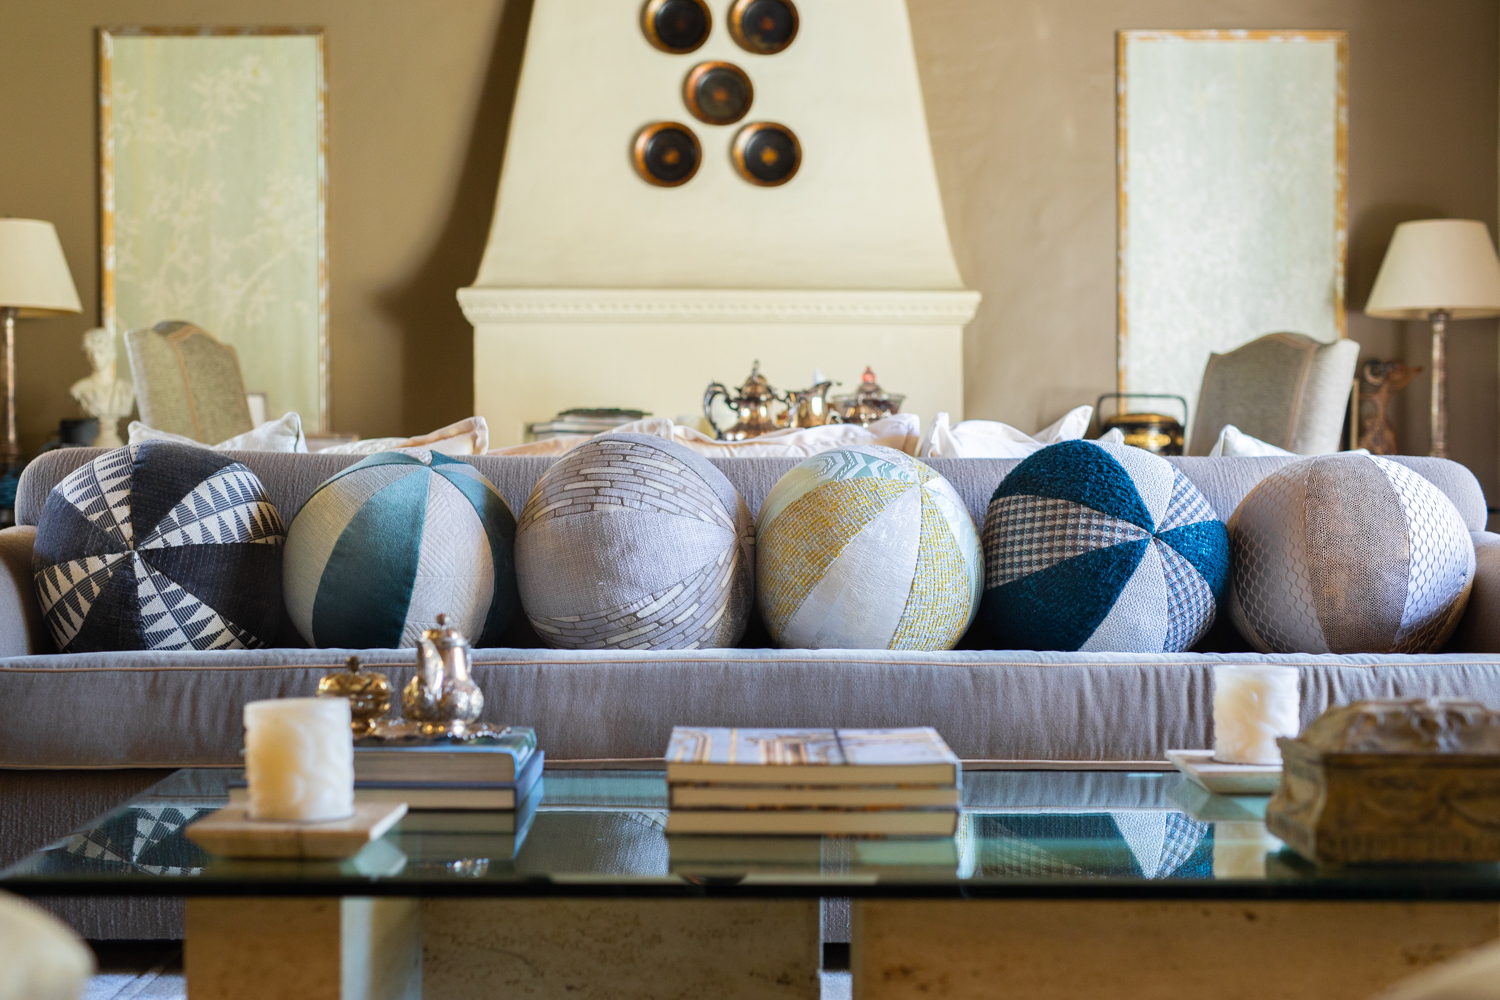 Ball Pillows - Liven up your home with our fun ball pillows. Available in both indoor and outdoor fabrics, they are charming additions for bedrooms and patios alike. Mix and match styles and sizes for a look that's uniquely you. Filled with trillium, they are an eco-friendly and hypoallergenic alternative to traditional down pillows.